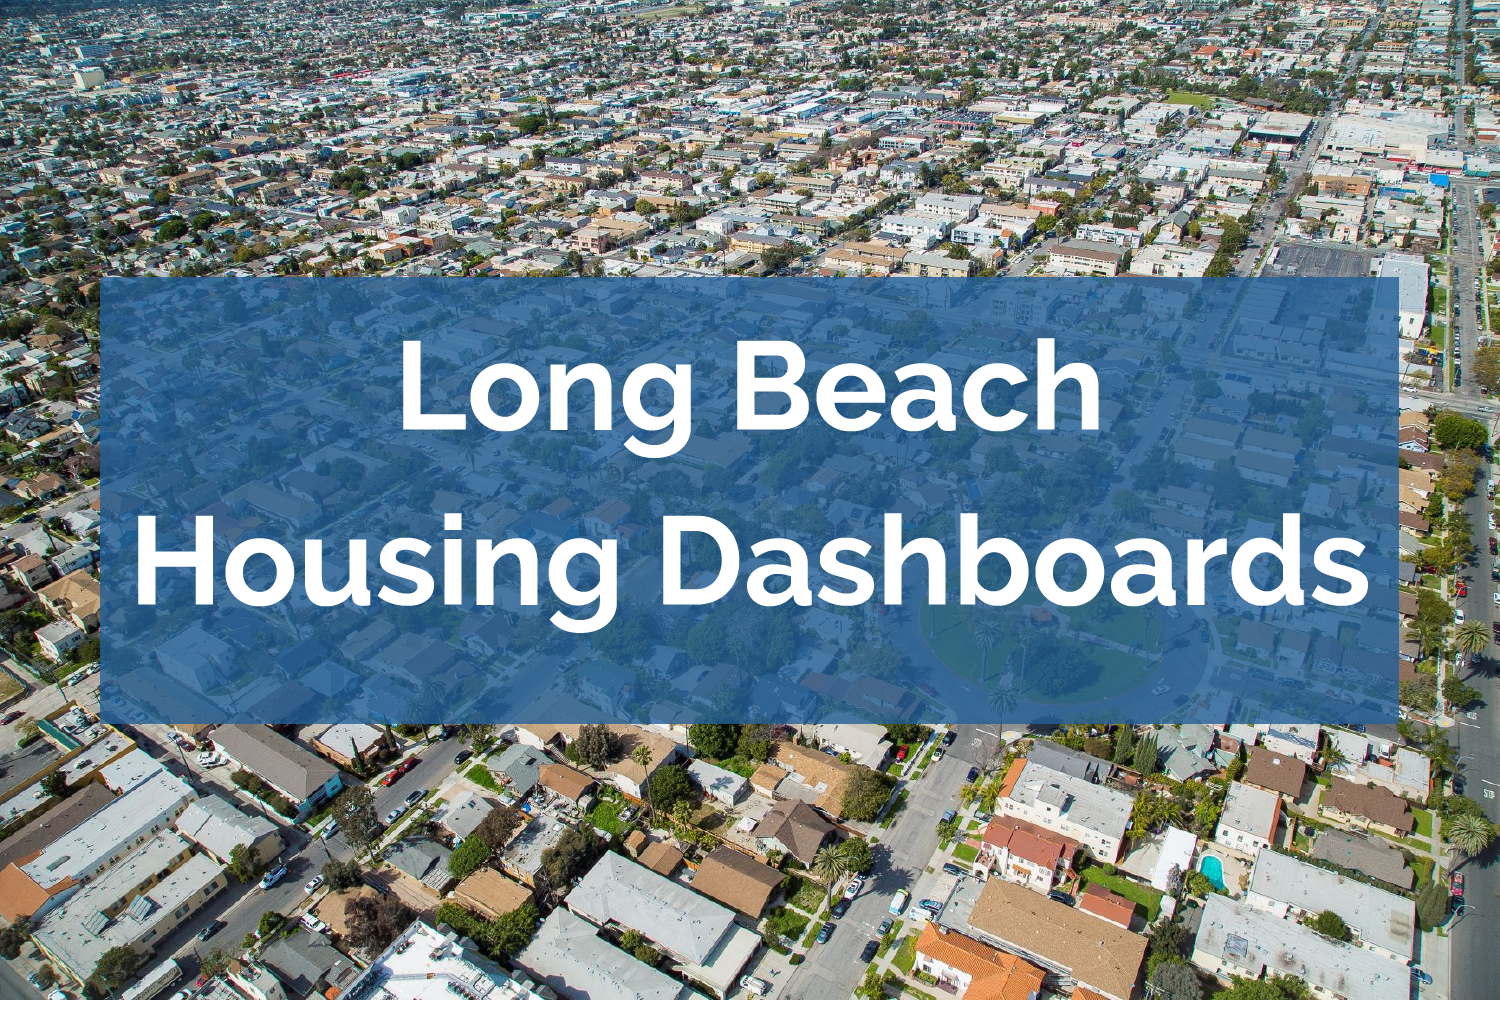 Long Beach Housing Dashboards